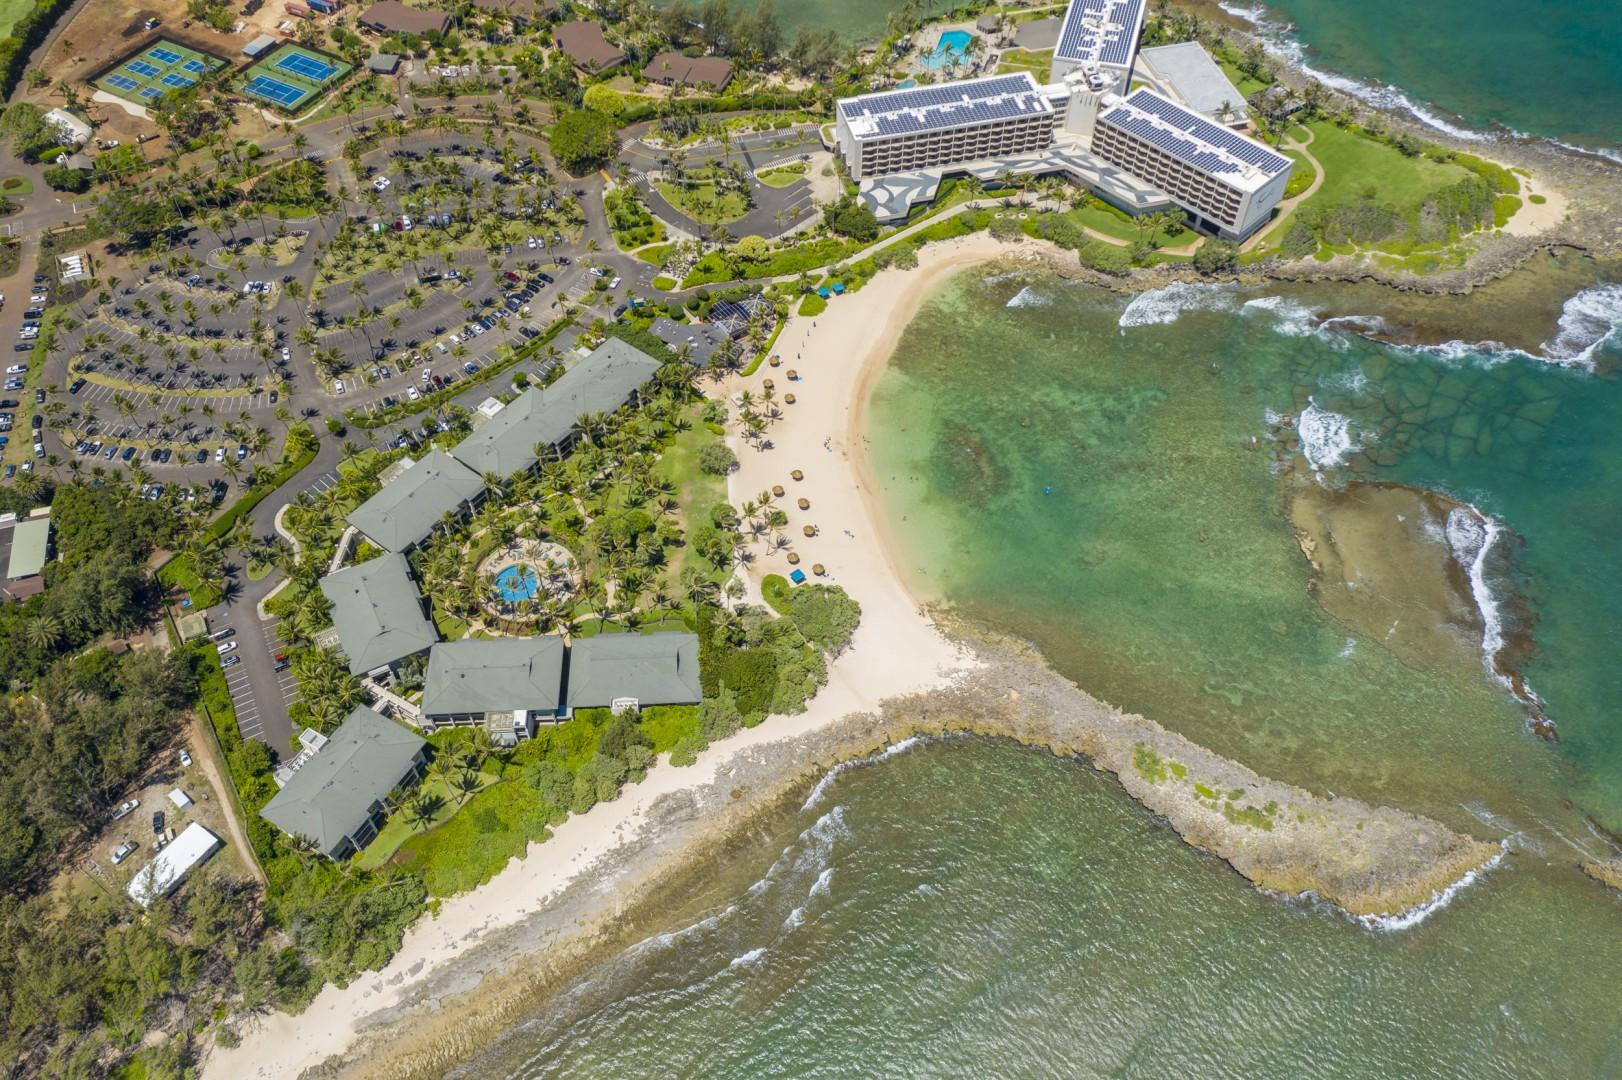 Aerial view of the Ocean Villas and Turtle Bay Resort